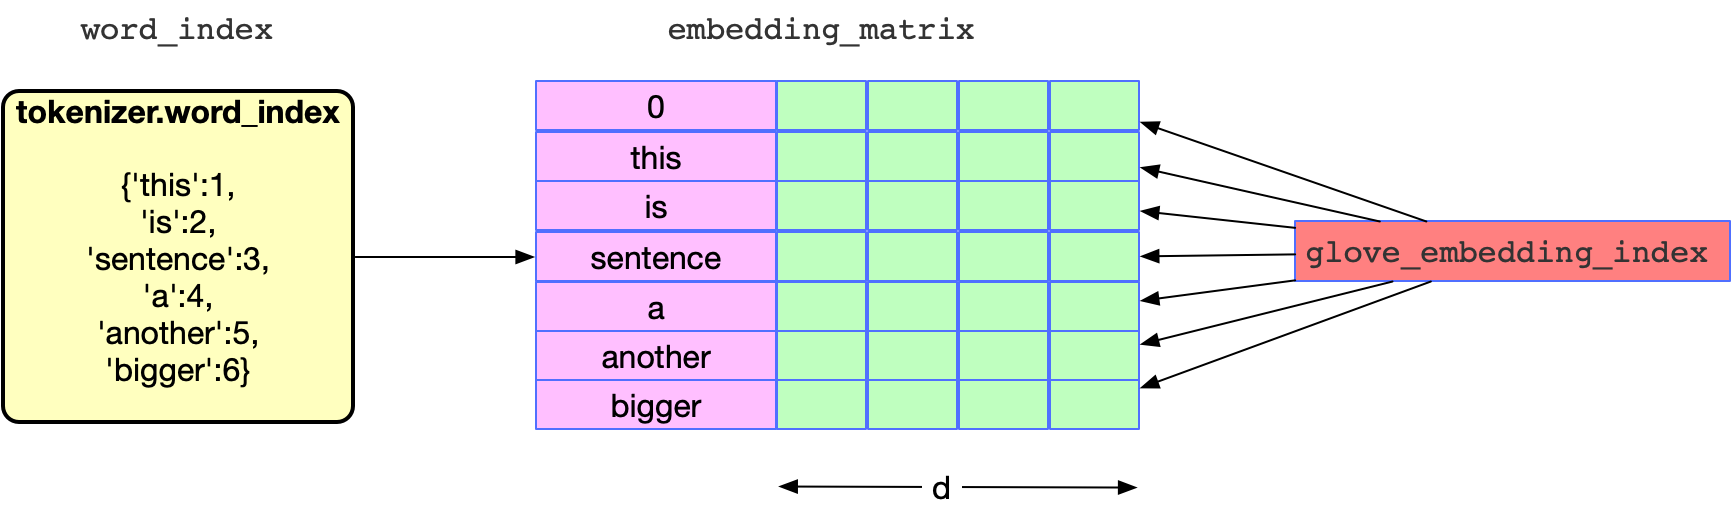 NLP Learning Series: Part 1 - Text Preprocessing Methods for